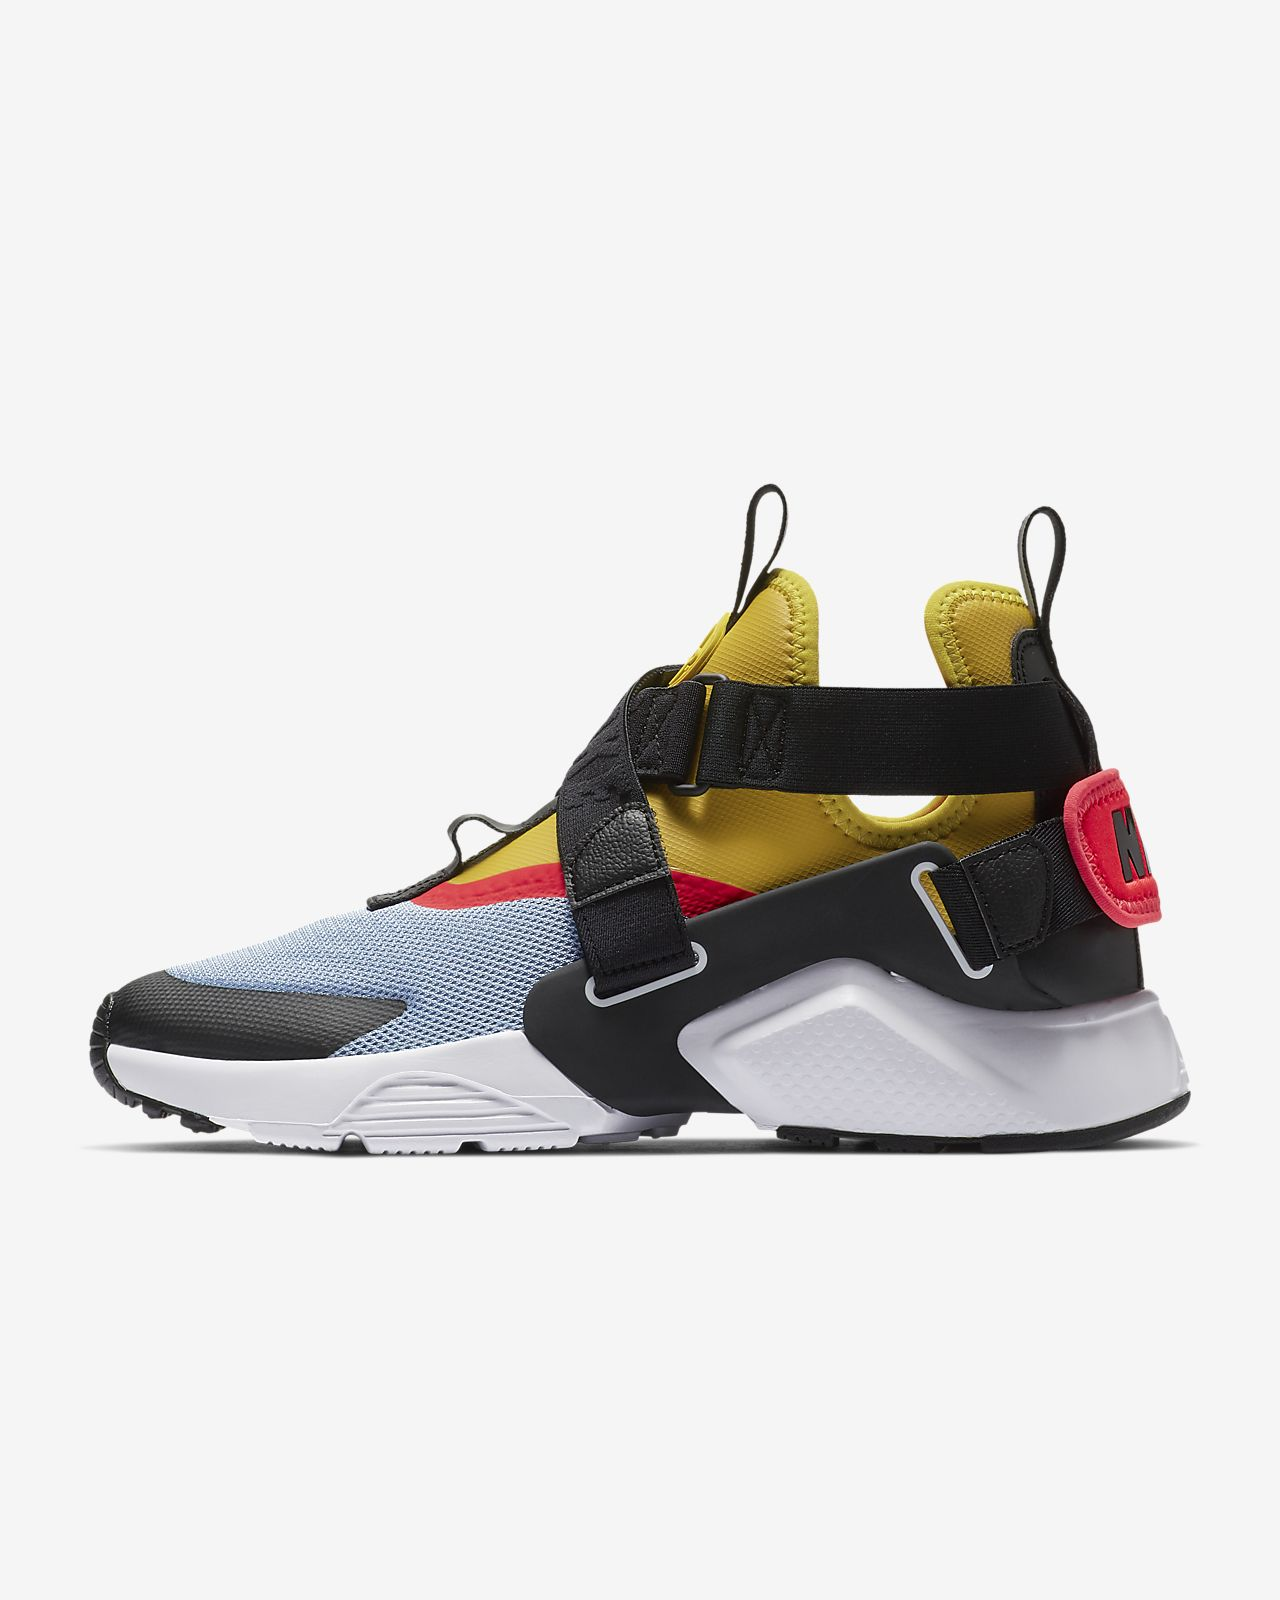 26a9f3c603de Nike Air Huarache City Women s Shoe. Nike.com